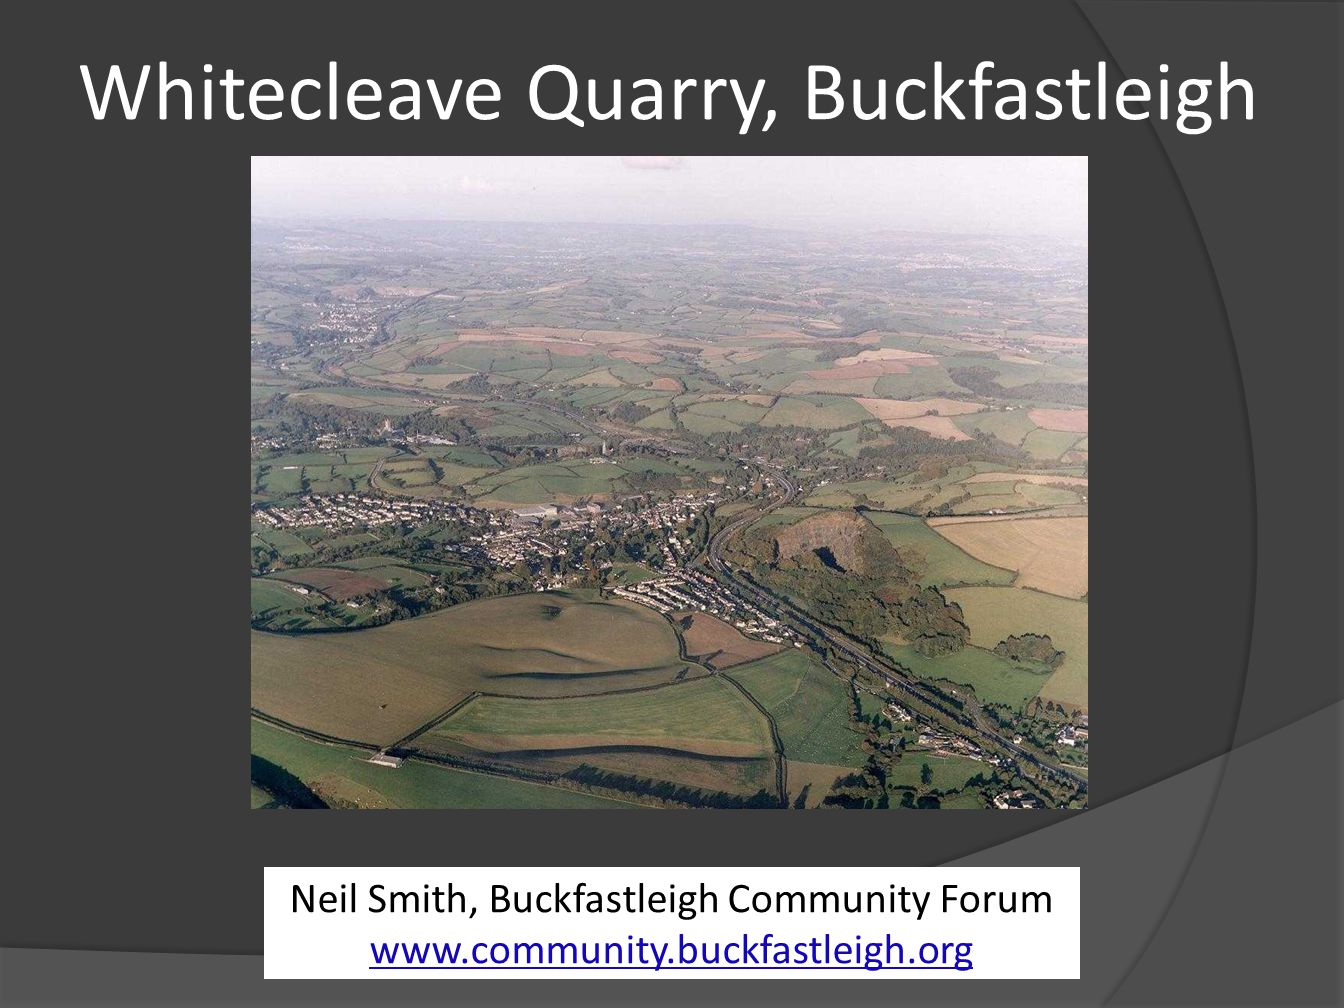 Whitecleave Quarry, Buckfastleigh